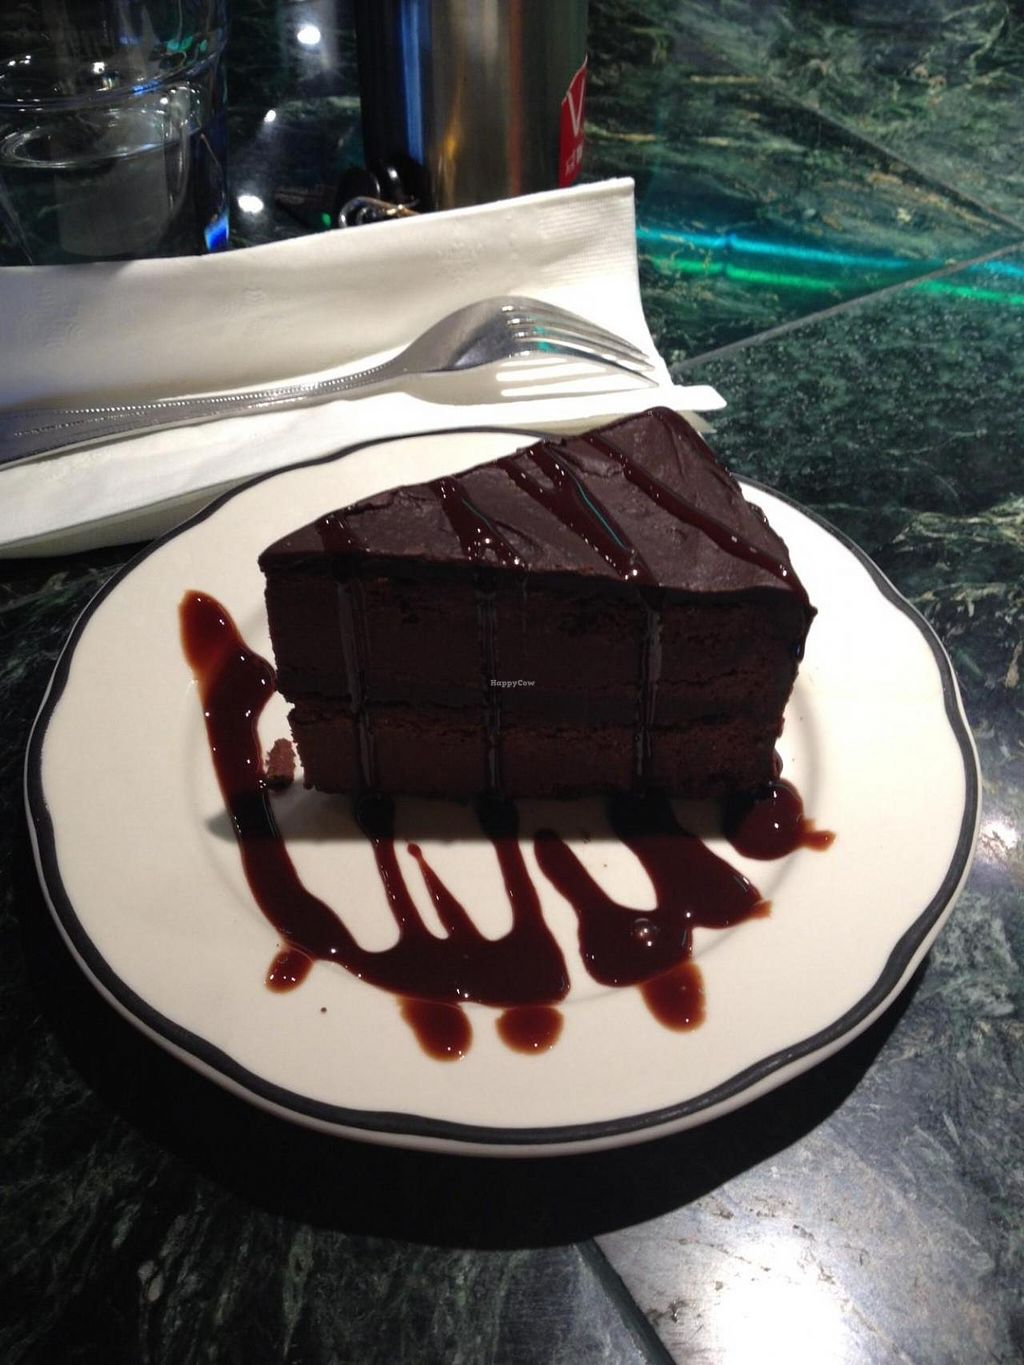 """Photo of Organic Oasis  by <a href=""""/members/profile/Sarah%20P"""">Sarah P</a> <br/>Vegan gluten-free chocolate cake <br/> August 5, 2014  - <a href='/contact/abuse/image/3087/76130'>Report</a>"""